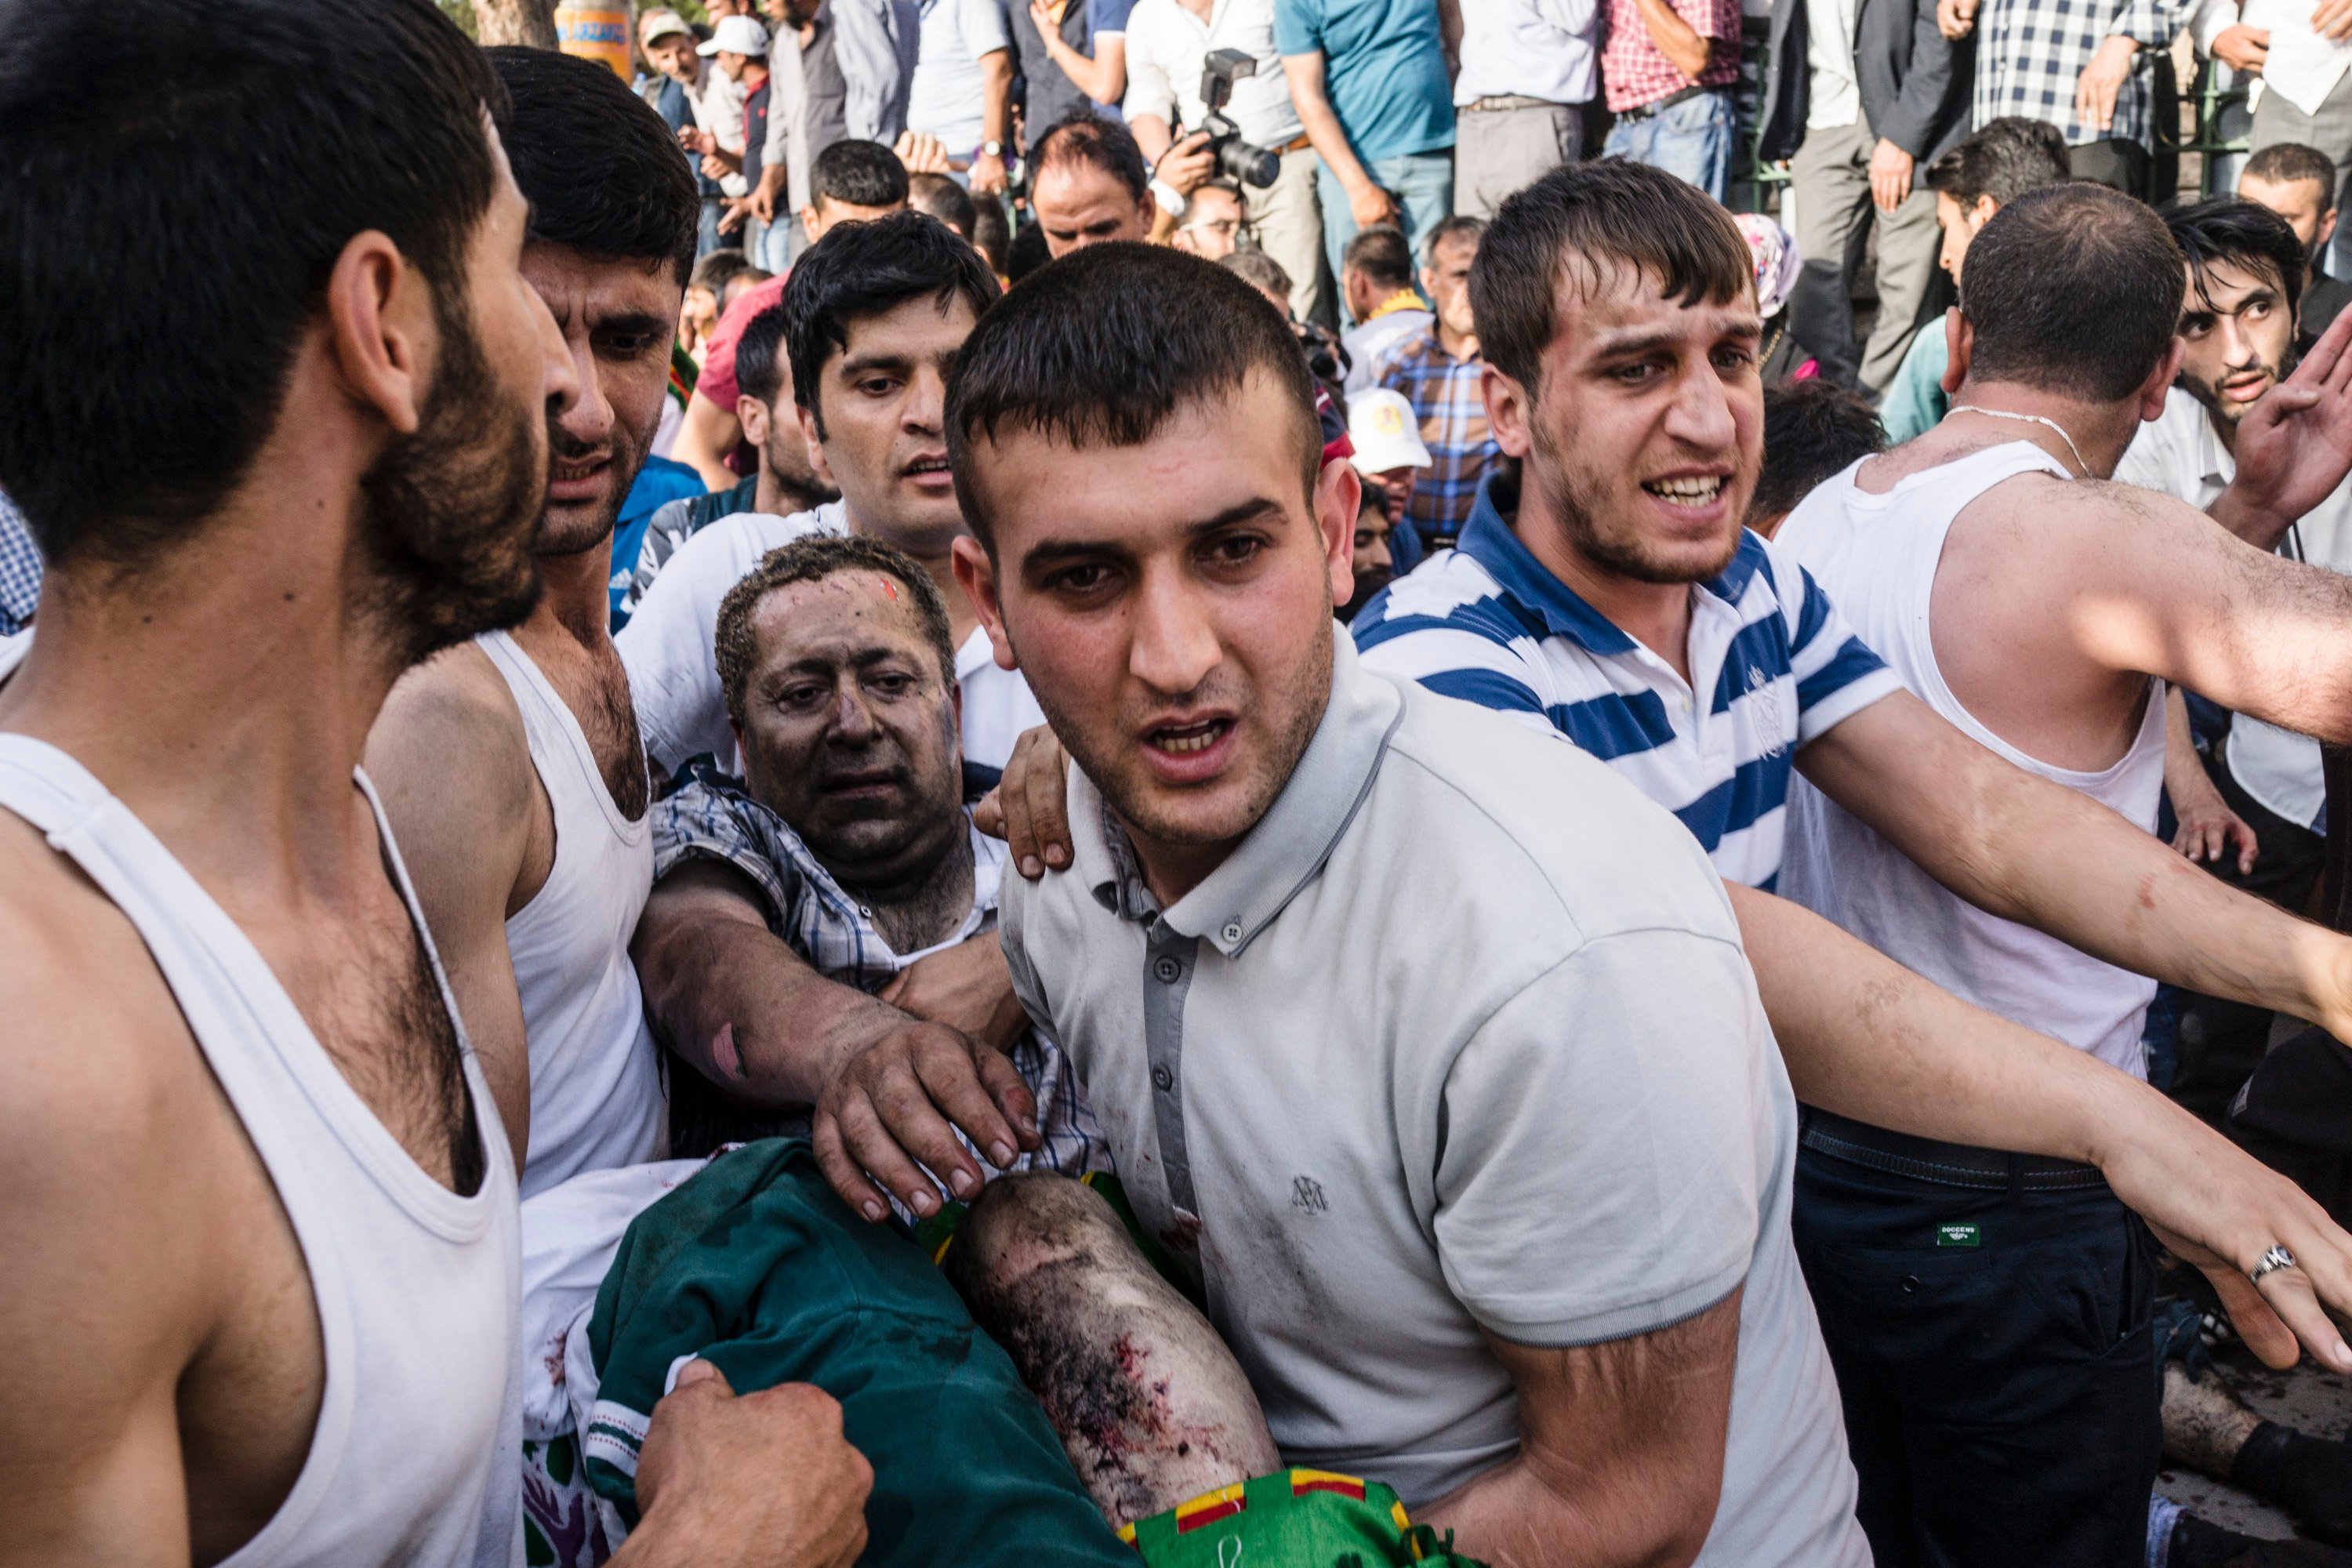 An injured man is carried away from the scene of a co-ordinated bombings during a HDP rally in central Diyarbakir, South East Turkey on June 5th. All images © Guy Martin/Panos.